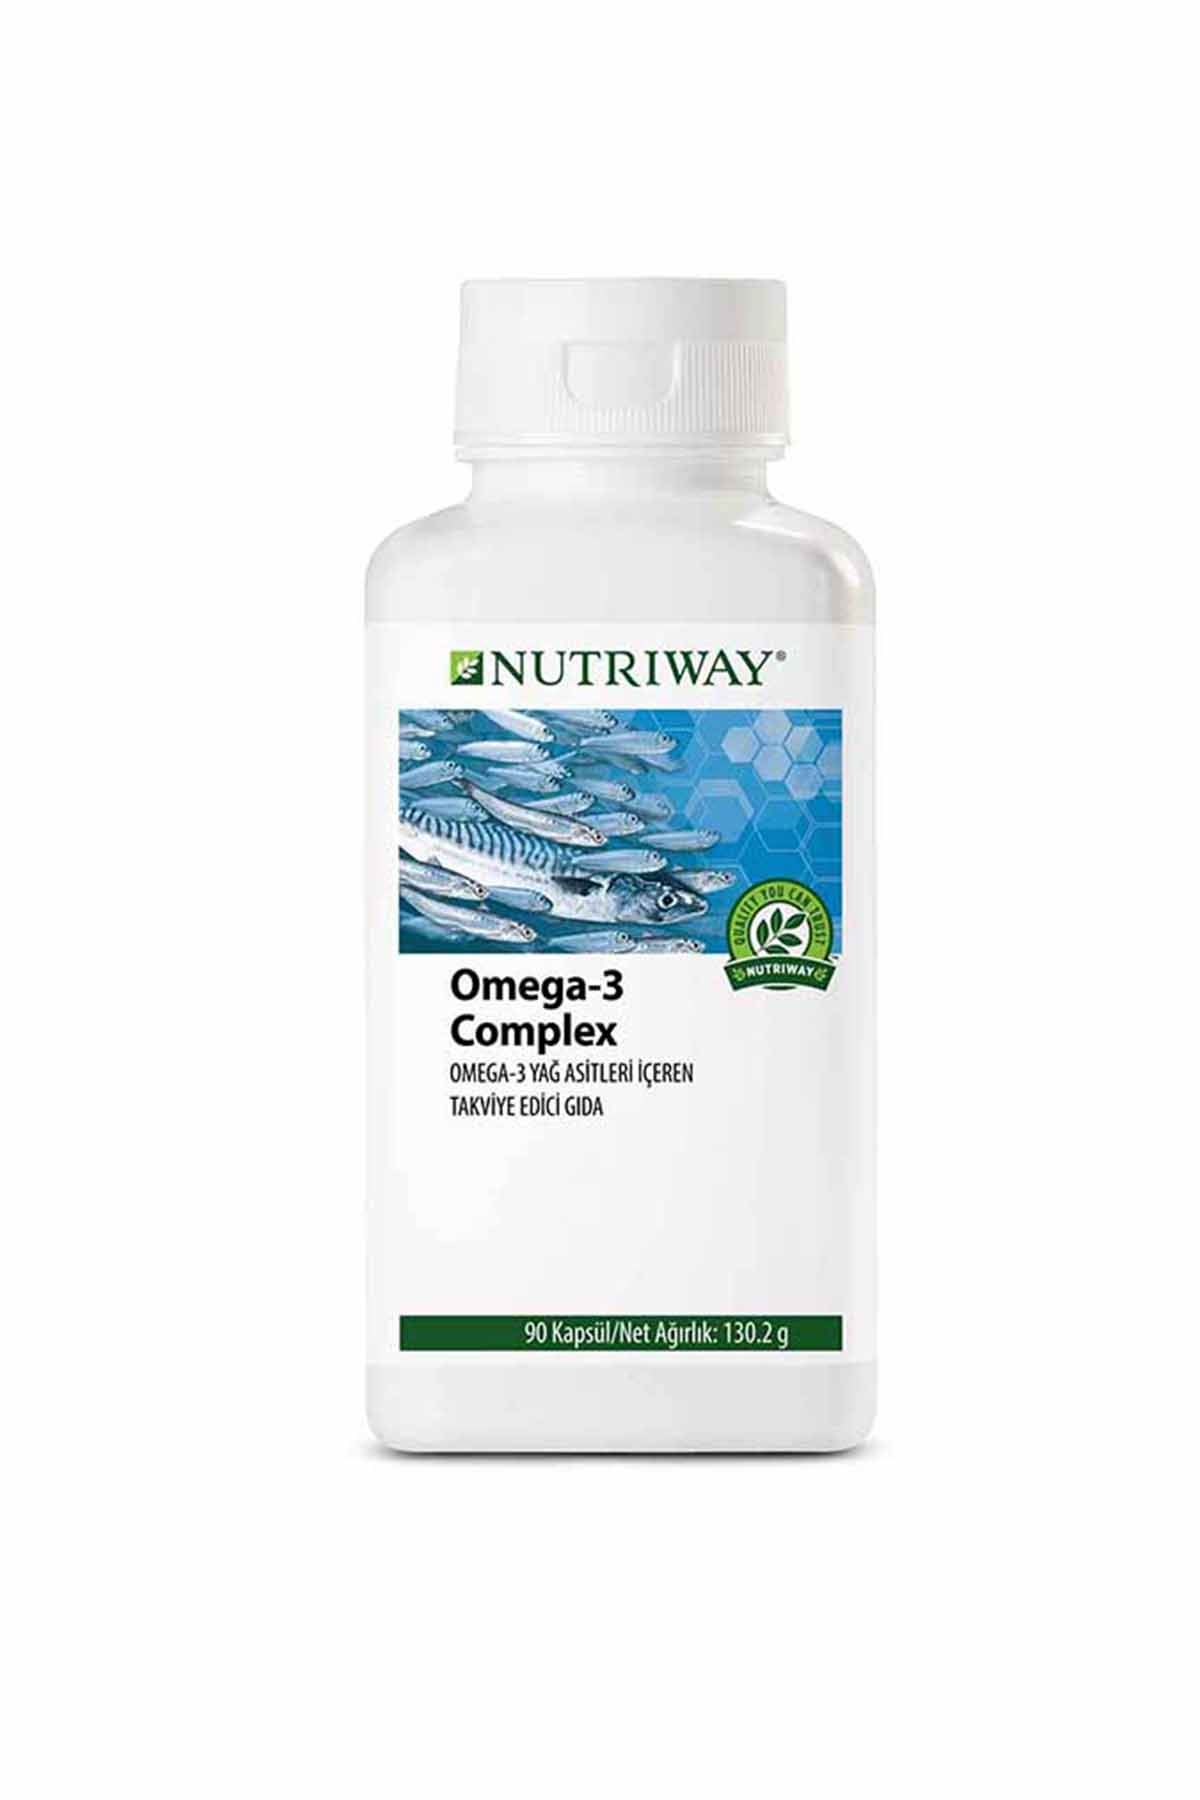 Omega 3 Complex NUTRIWAY™